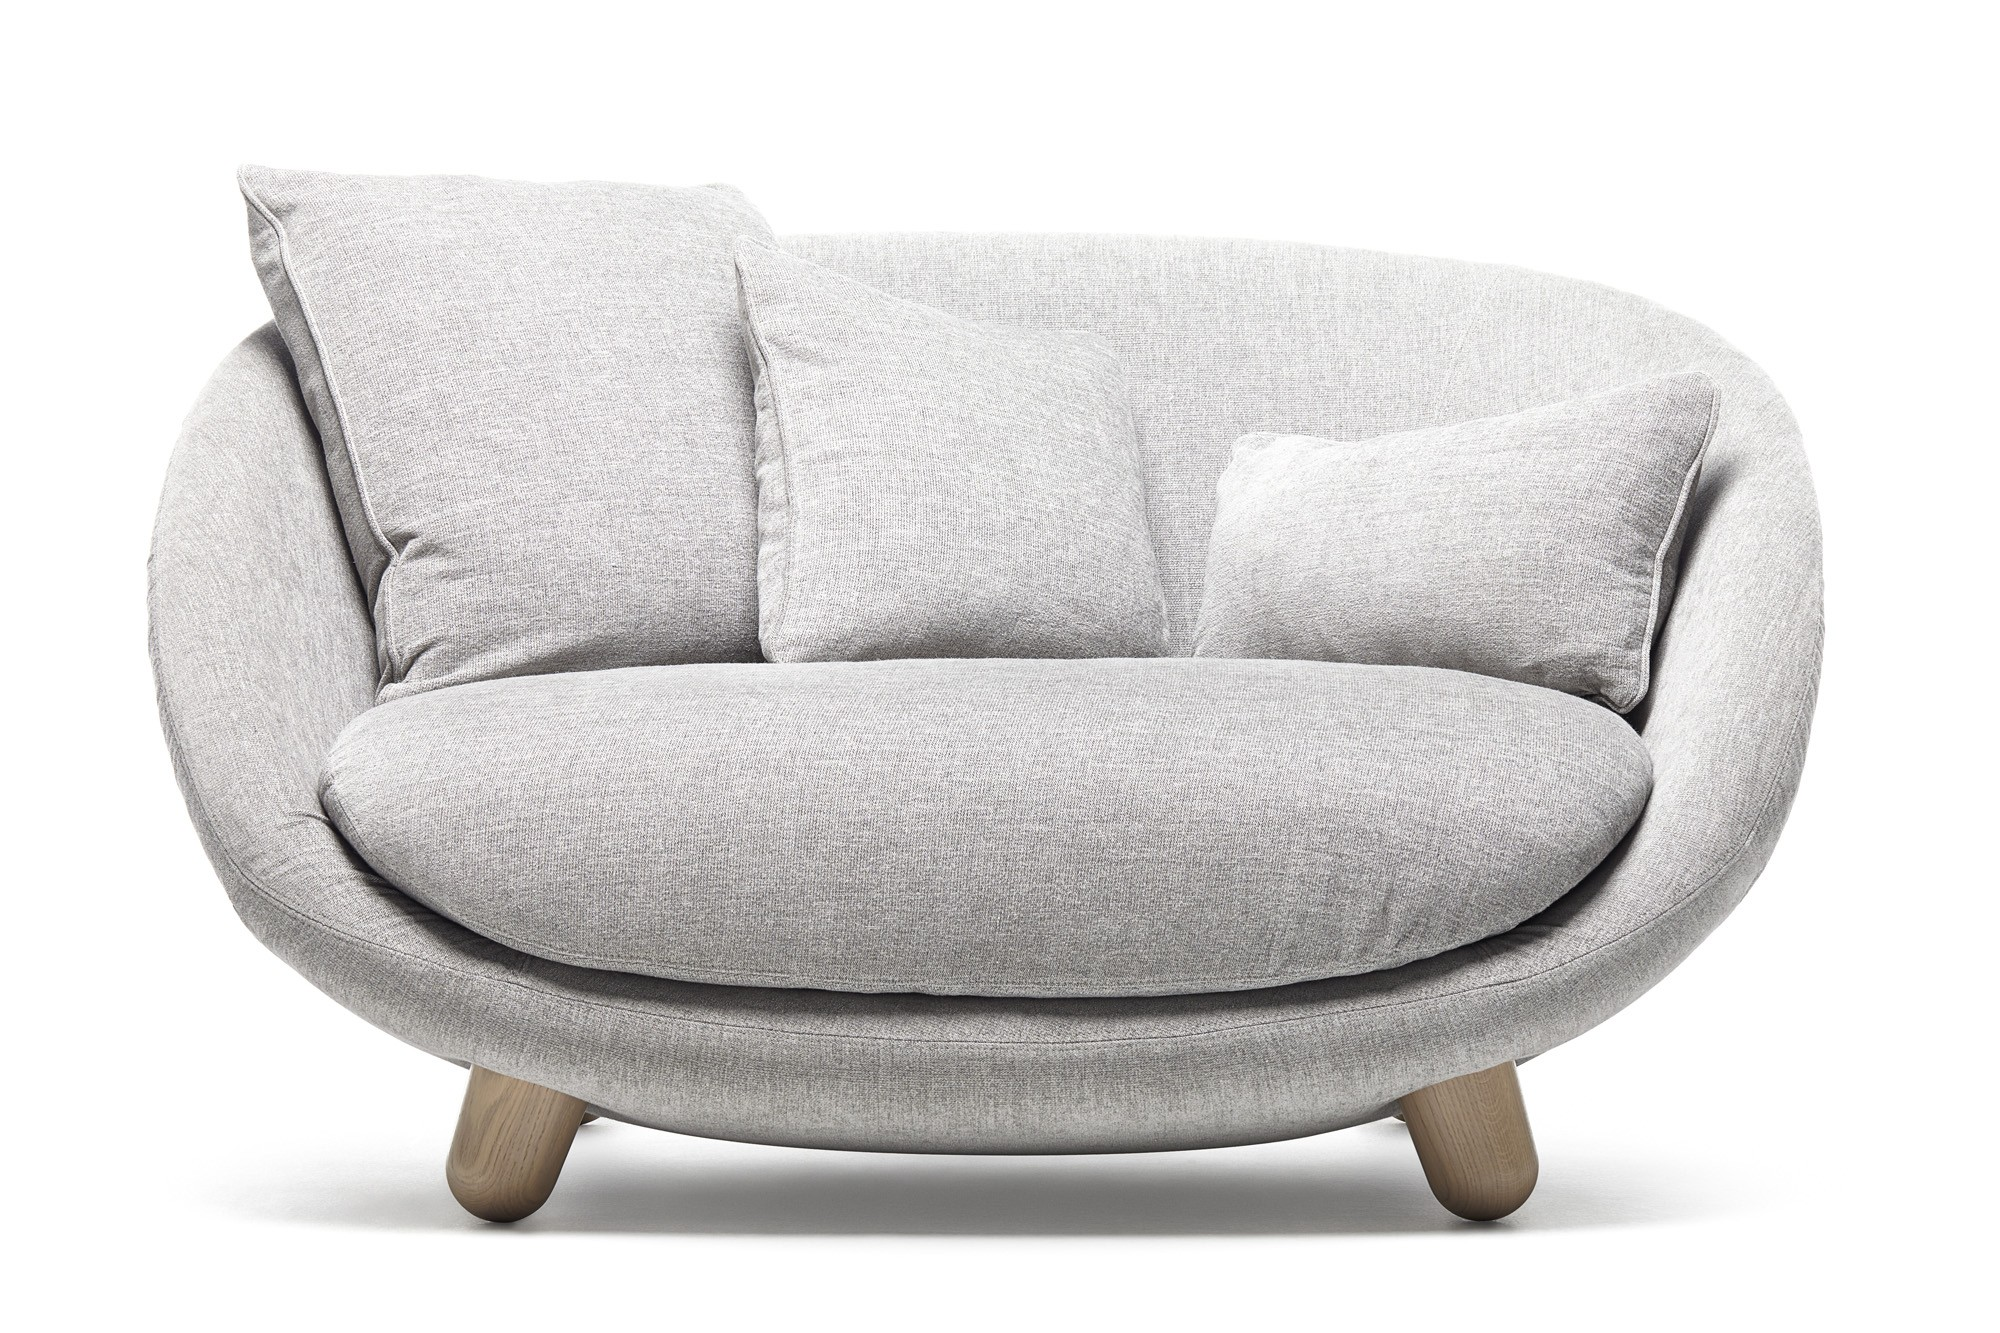 Get a love sofa and enjoy magical moments